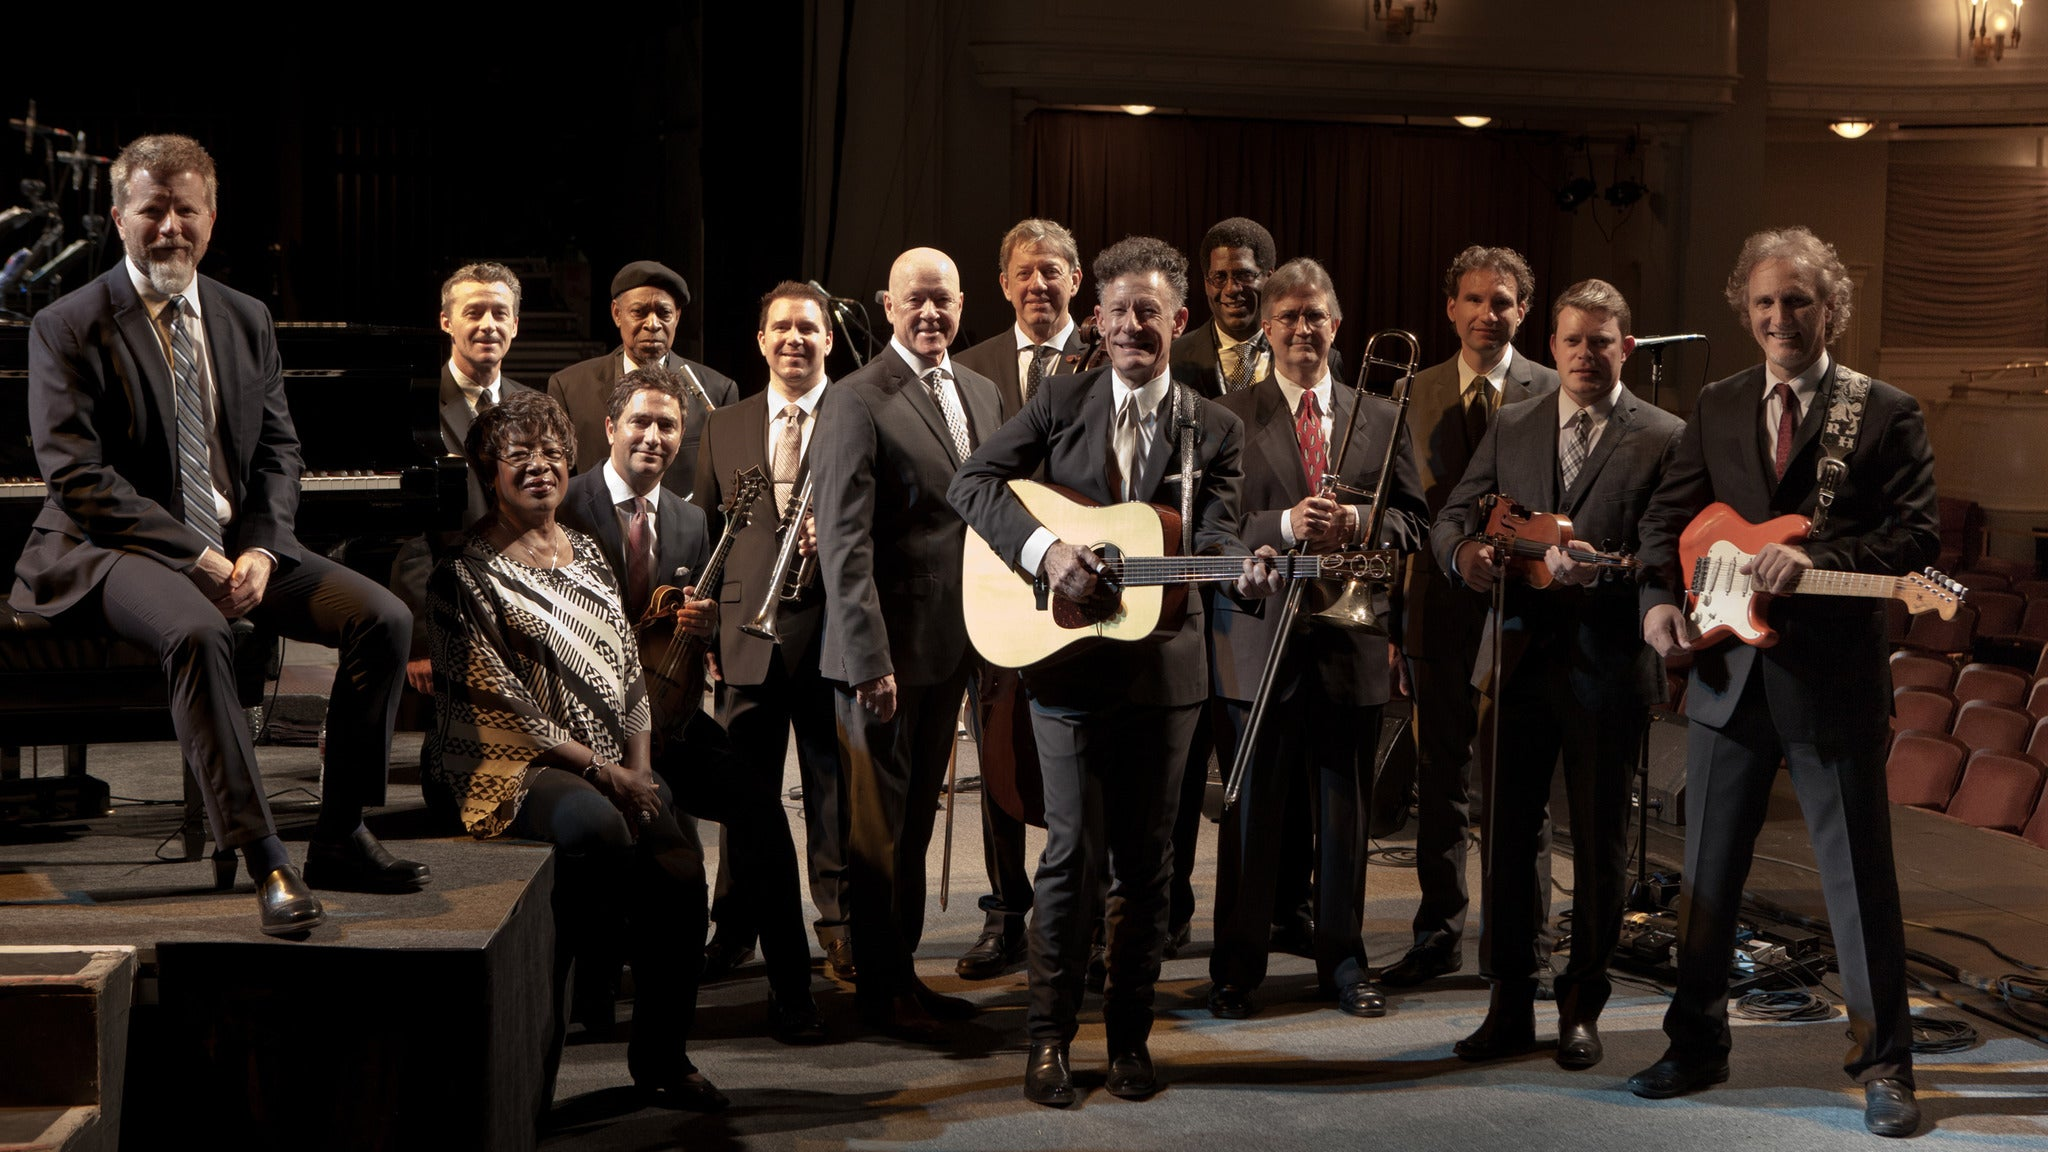 Lyle Lovett at California Center for the Arts - Escondido, CA 92025